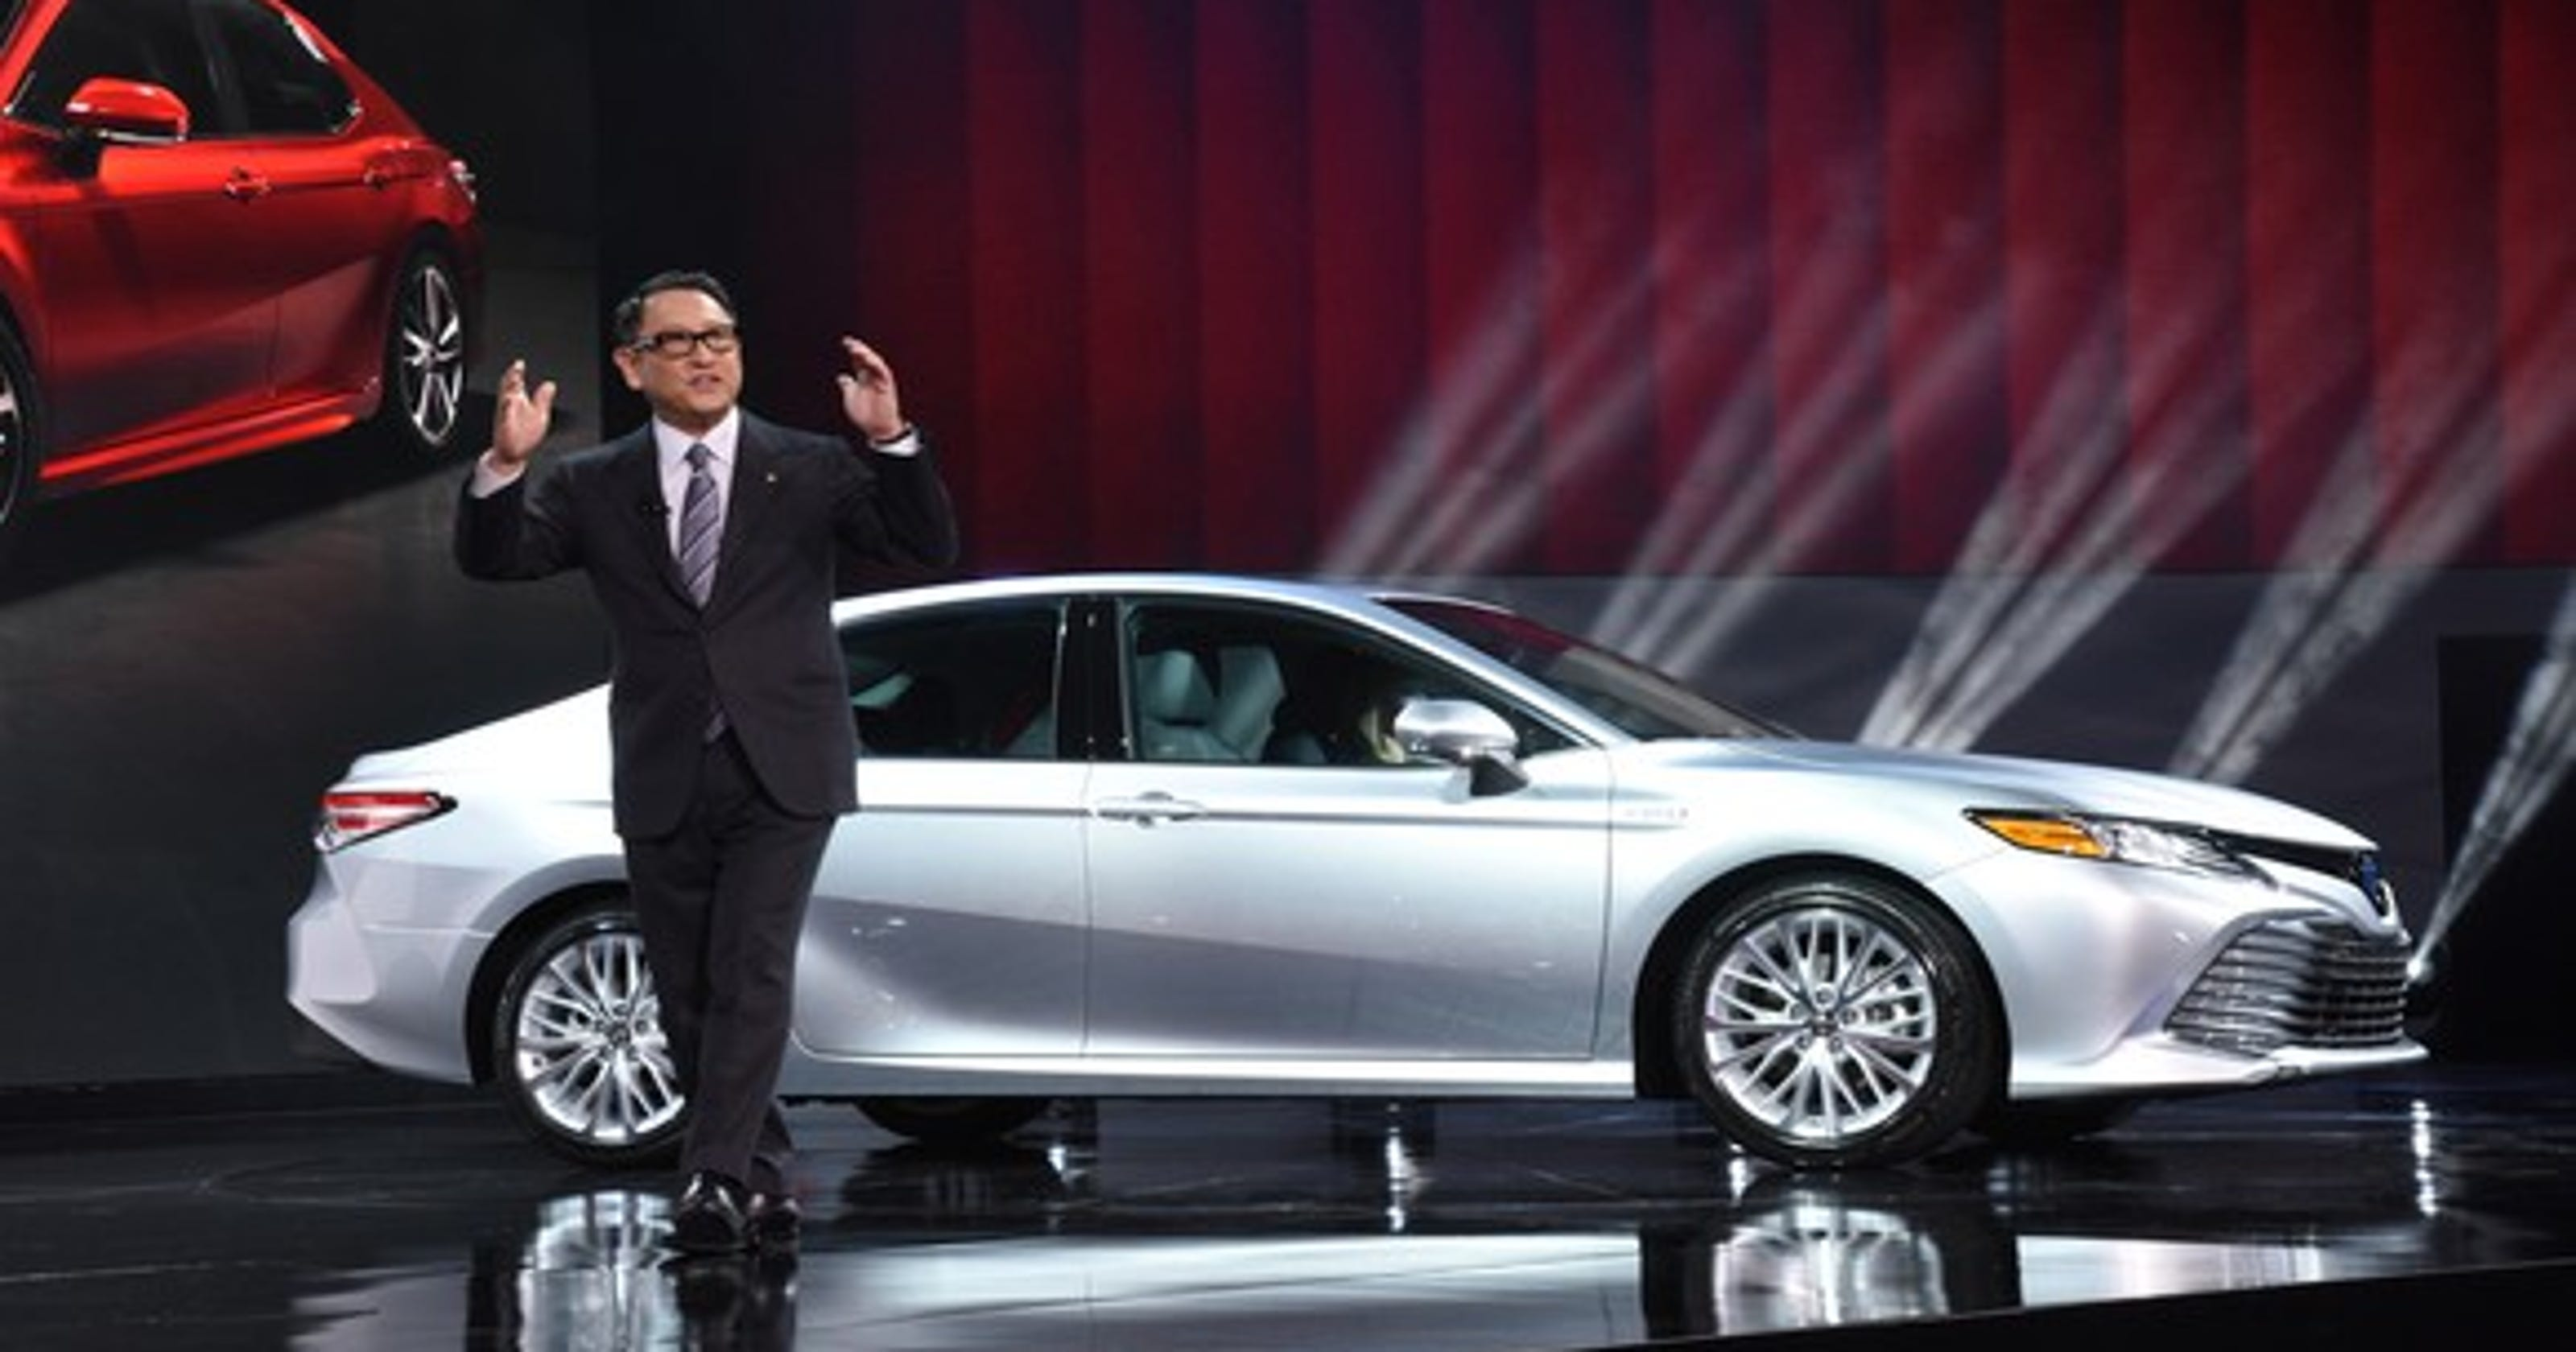 New York Auto Show How Nissan Toyota Honda Survived Car Plague - Toyota show car